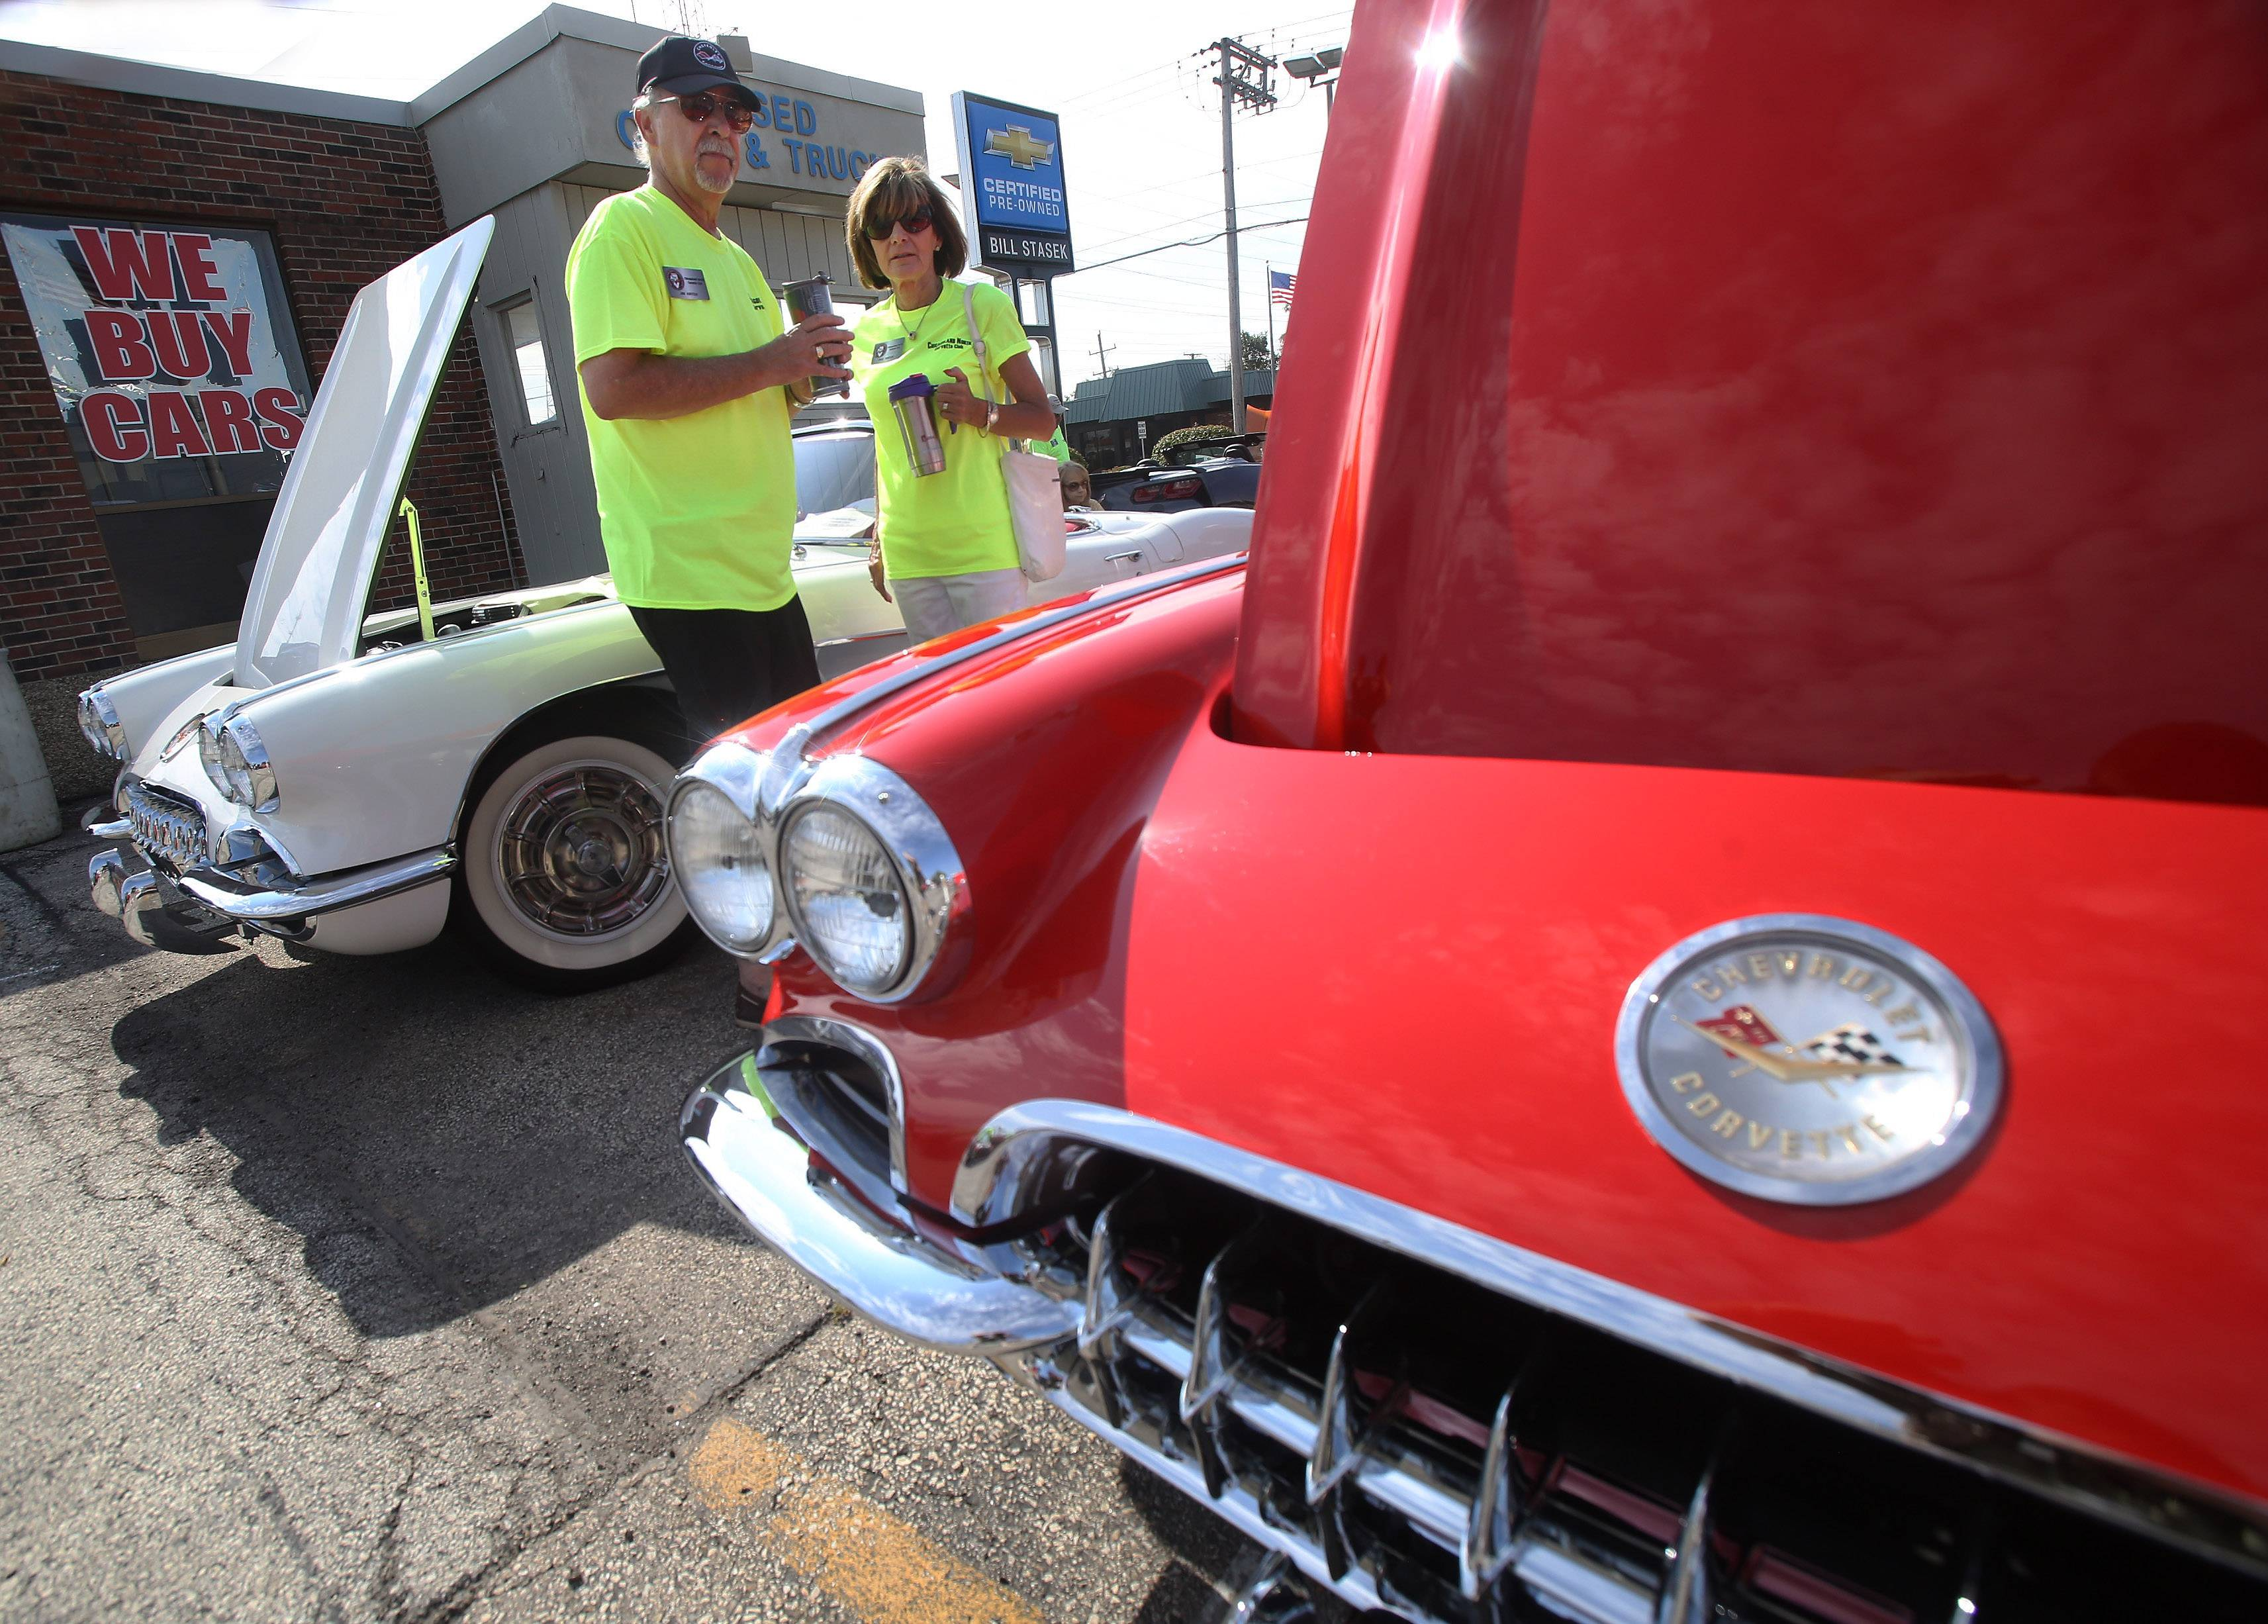 Jim and Peg Kritek, of Northbrook, look at two 1960 Corvette Roadsters during the 9th Annual All-Corvette Show at Bill Stasek Chrevolet in Wheeling. The show was sponsored by the Chicagoland North Corvette Club and featured over 100 Corvettes.